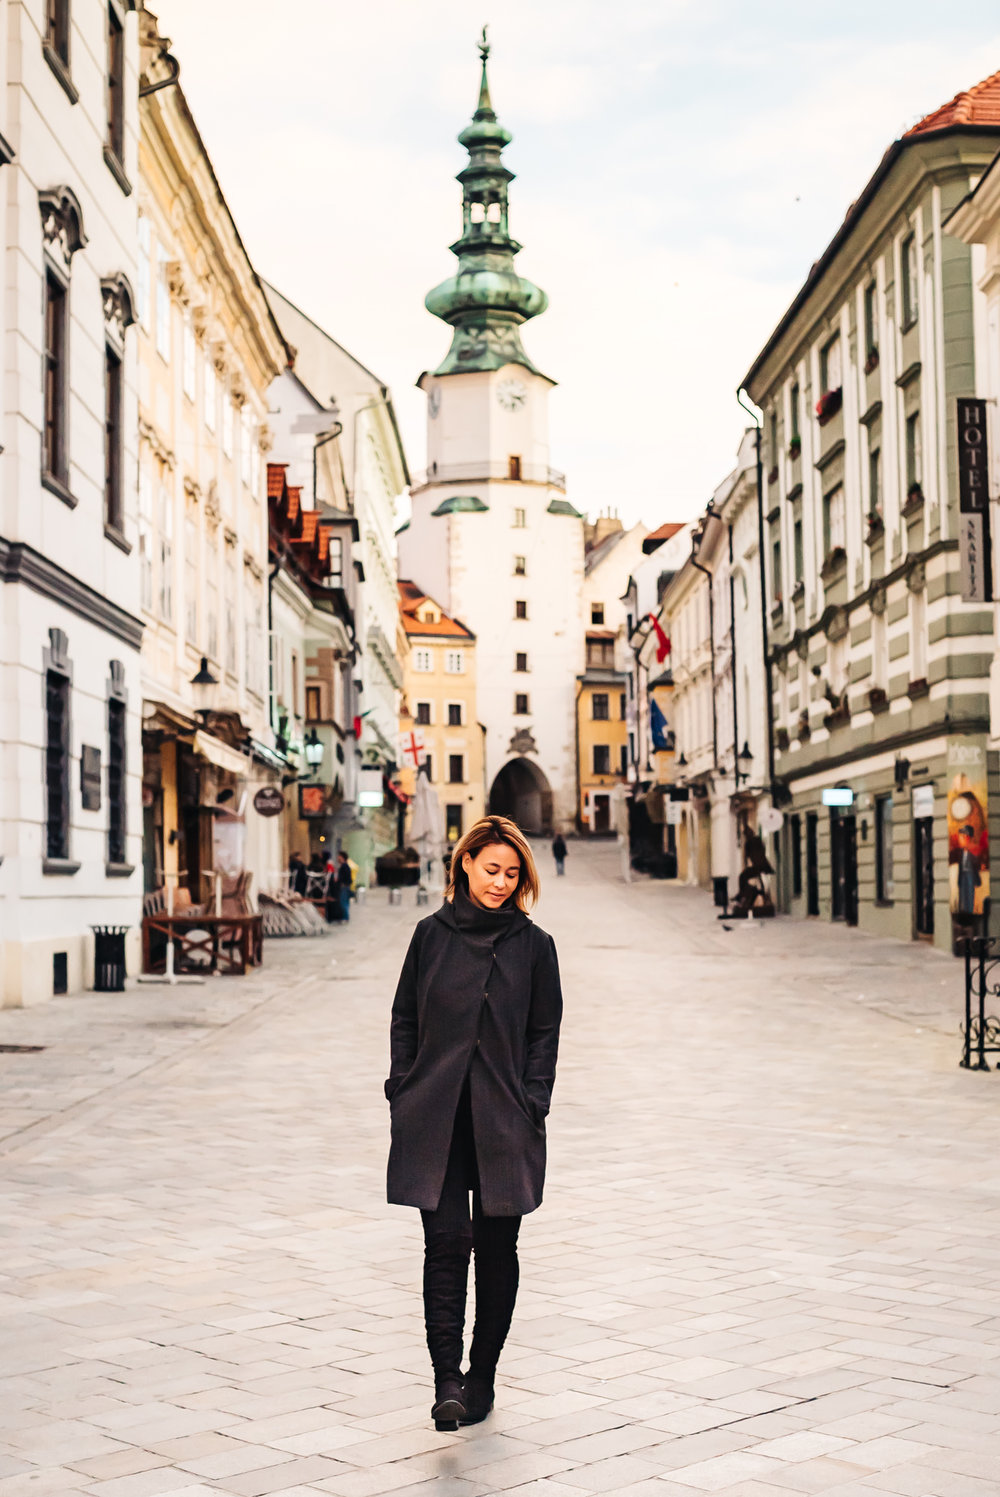 Walking the streets of Old Town